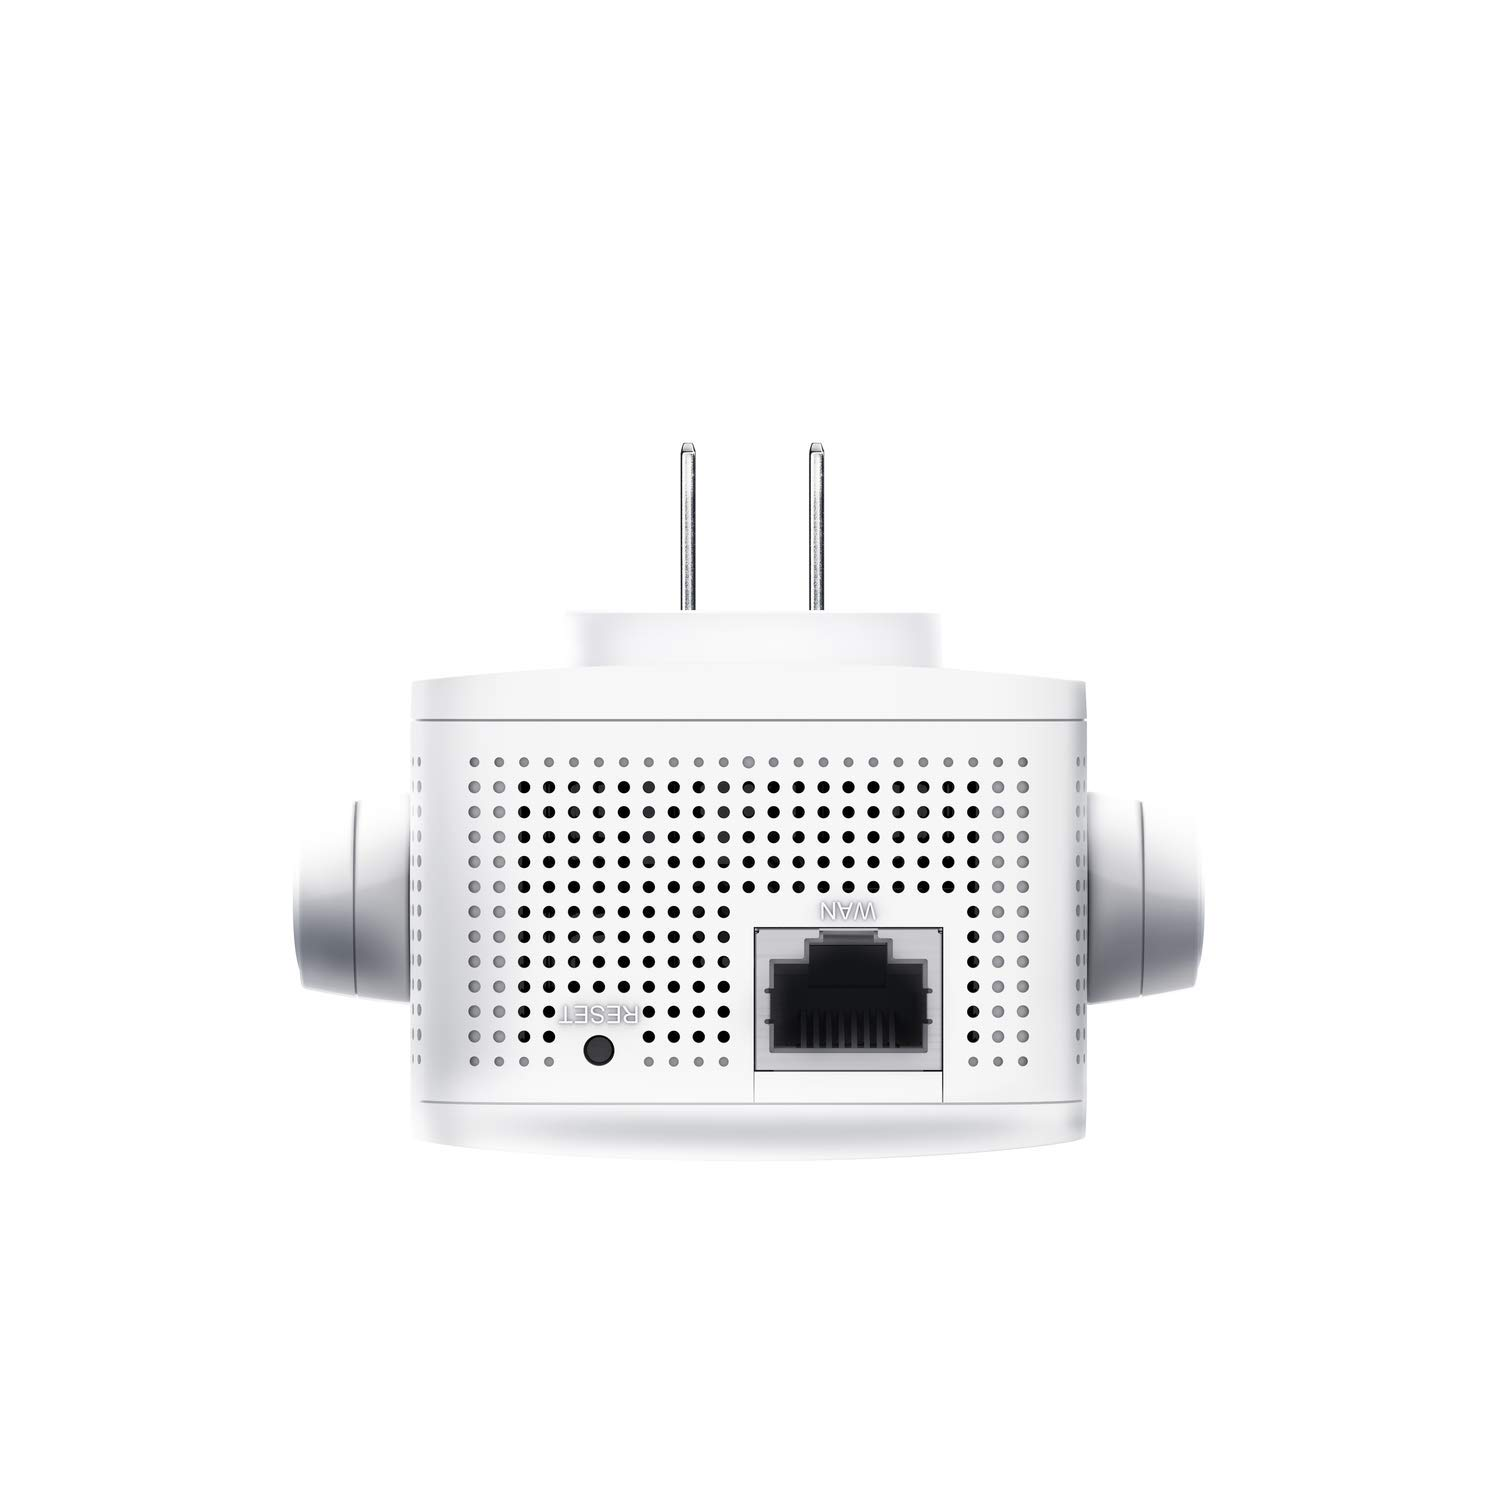 Repeater Access Point w//Mini Housing Design RE305 Extends WiFi to Smart Home /& Alexa Devices TP-Link AC1200 Dual Band WiFi Range Extender